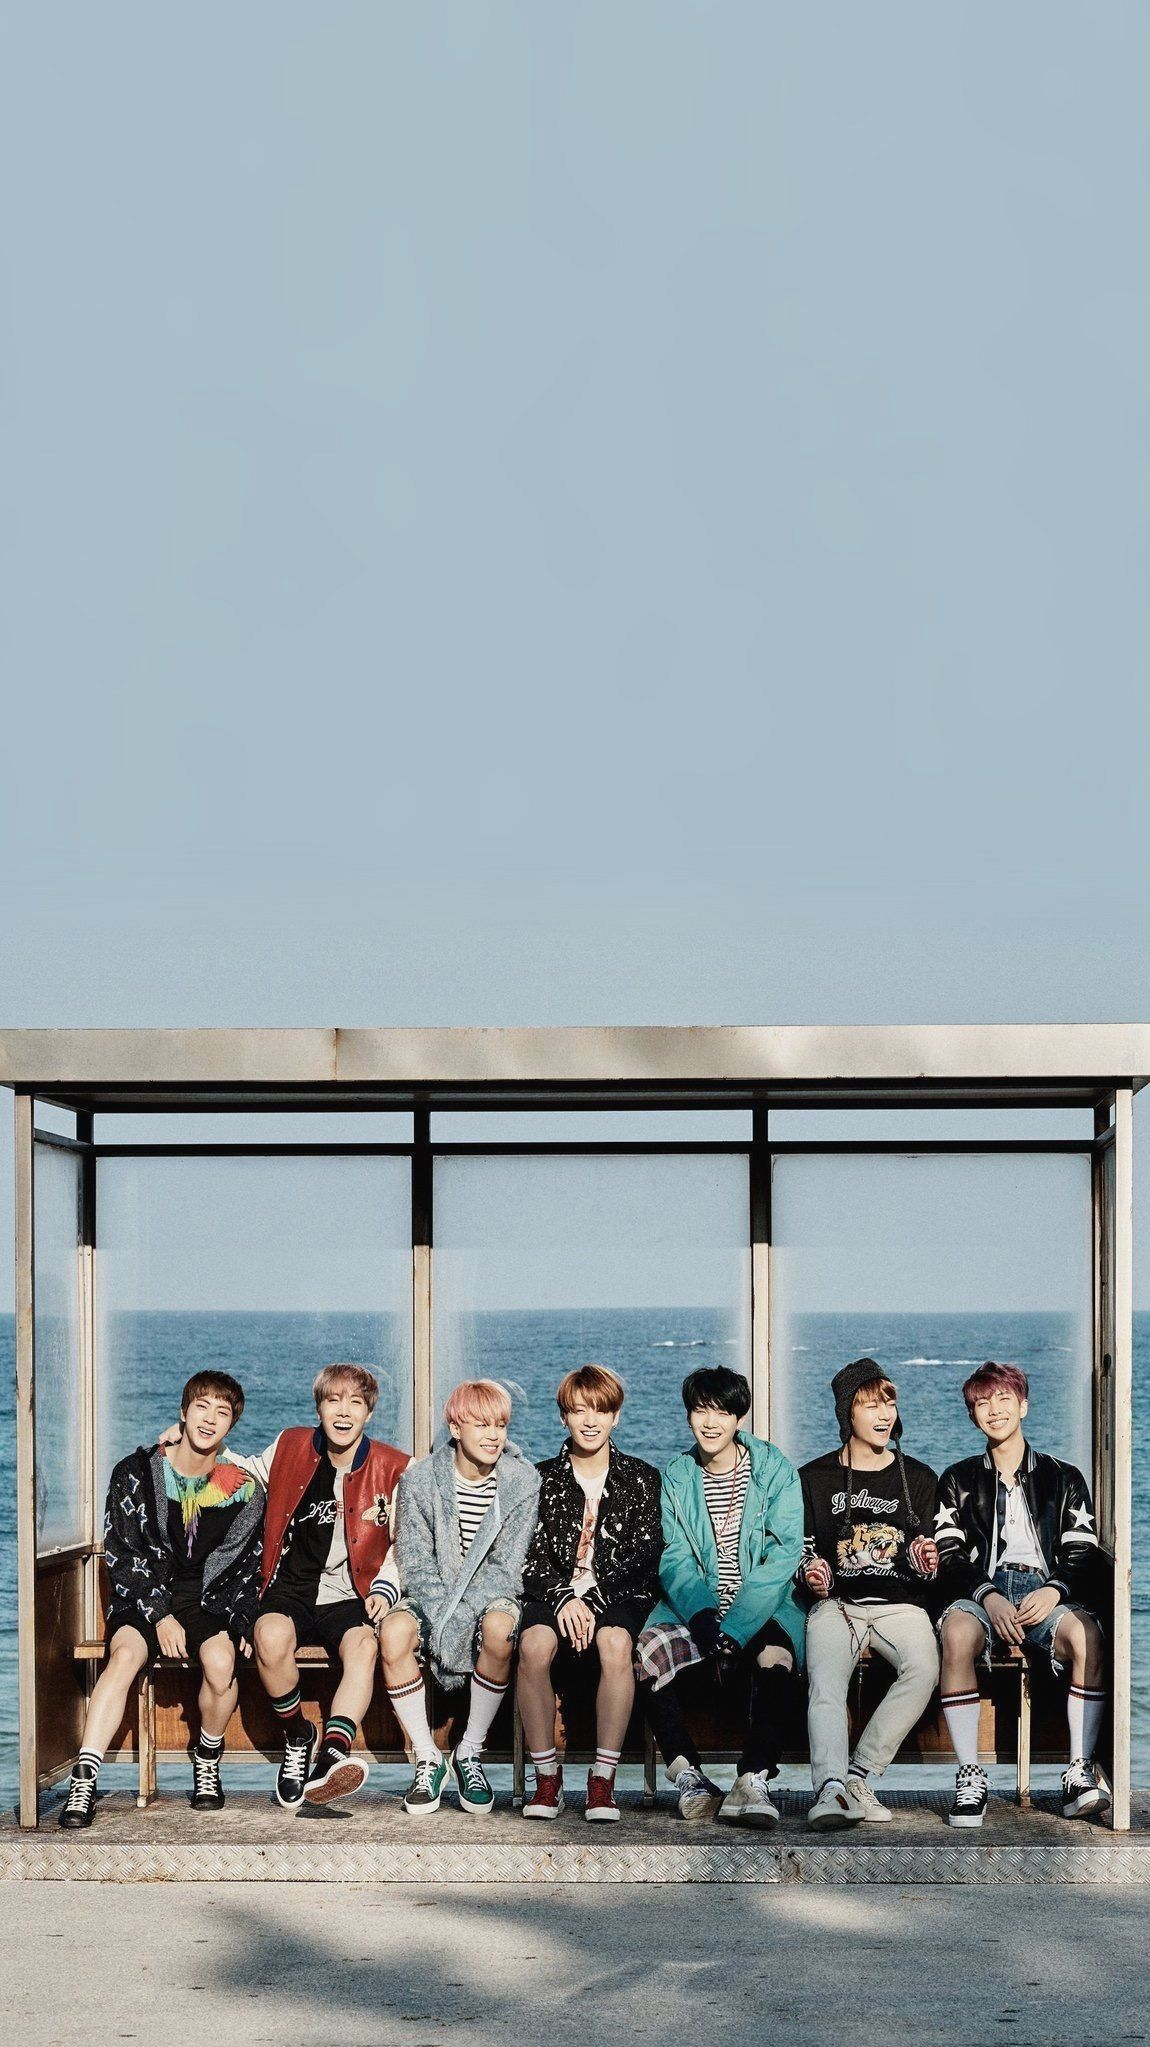 Iphone Aesthetic Lockscreen Bts Wallpaper Hd Wallpaper Bts Spring Day Wallpaper Bts Spring Day Bts Wallpaper